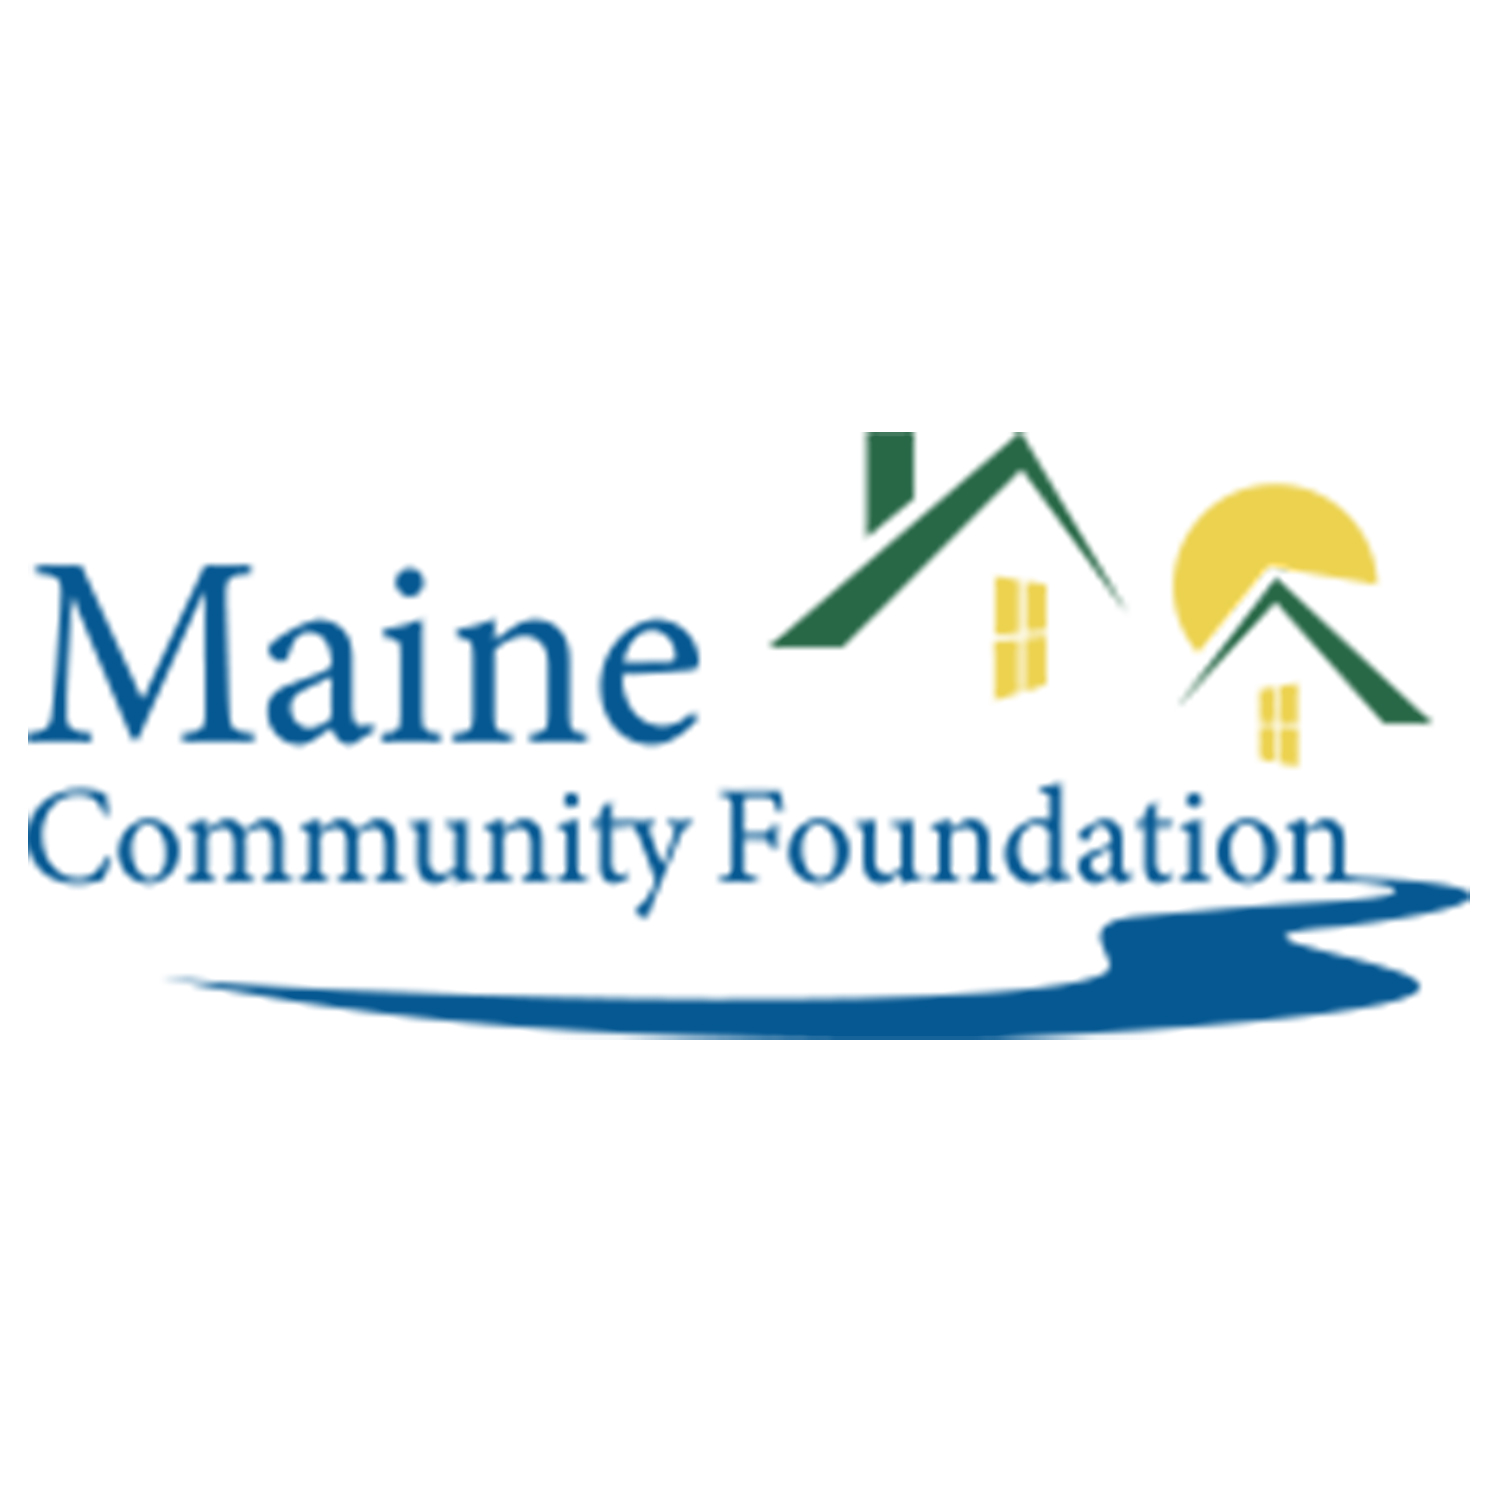 Maine Community Foundation.jpg